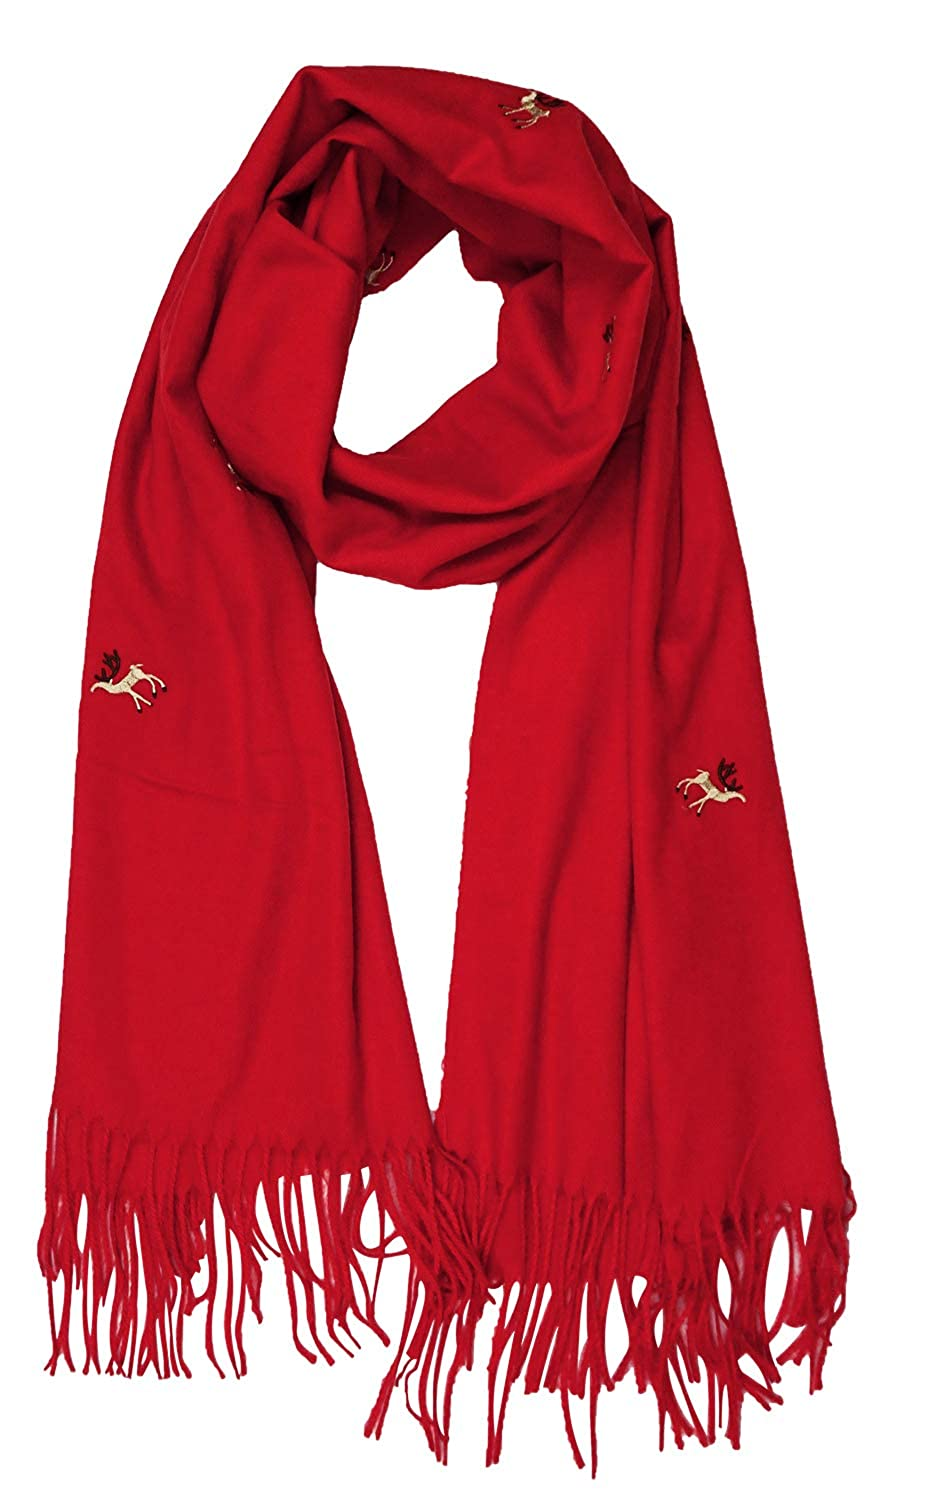 Deer Style_red Women Solid Soft Cashmere Feel Shawl Wrap Scarf